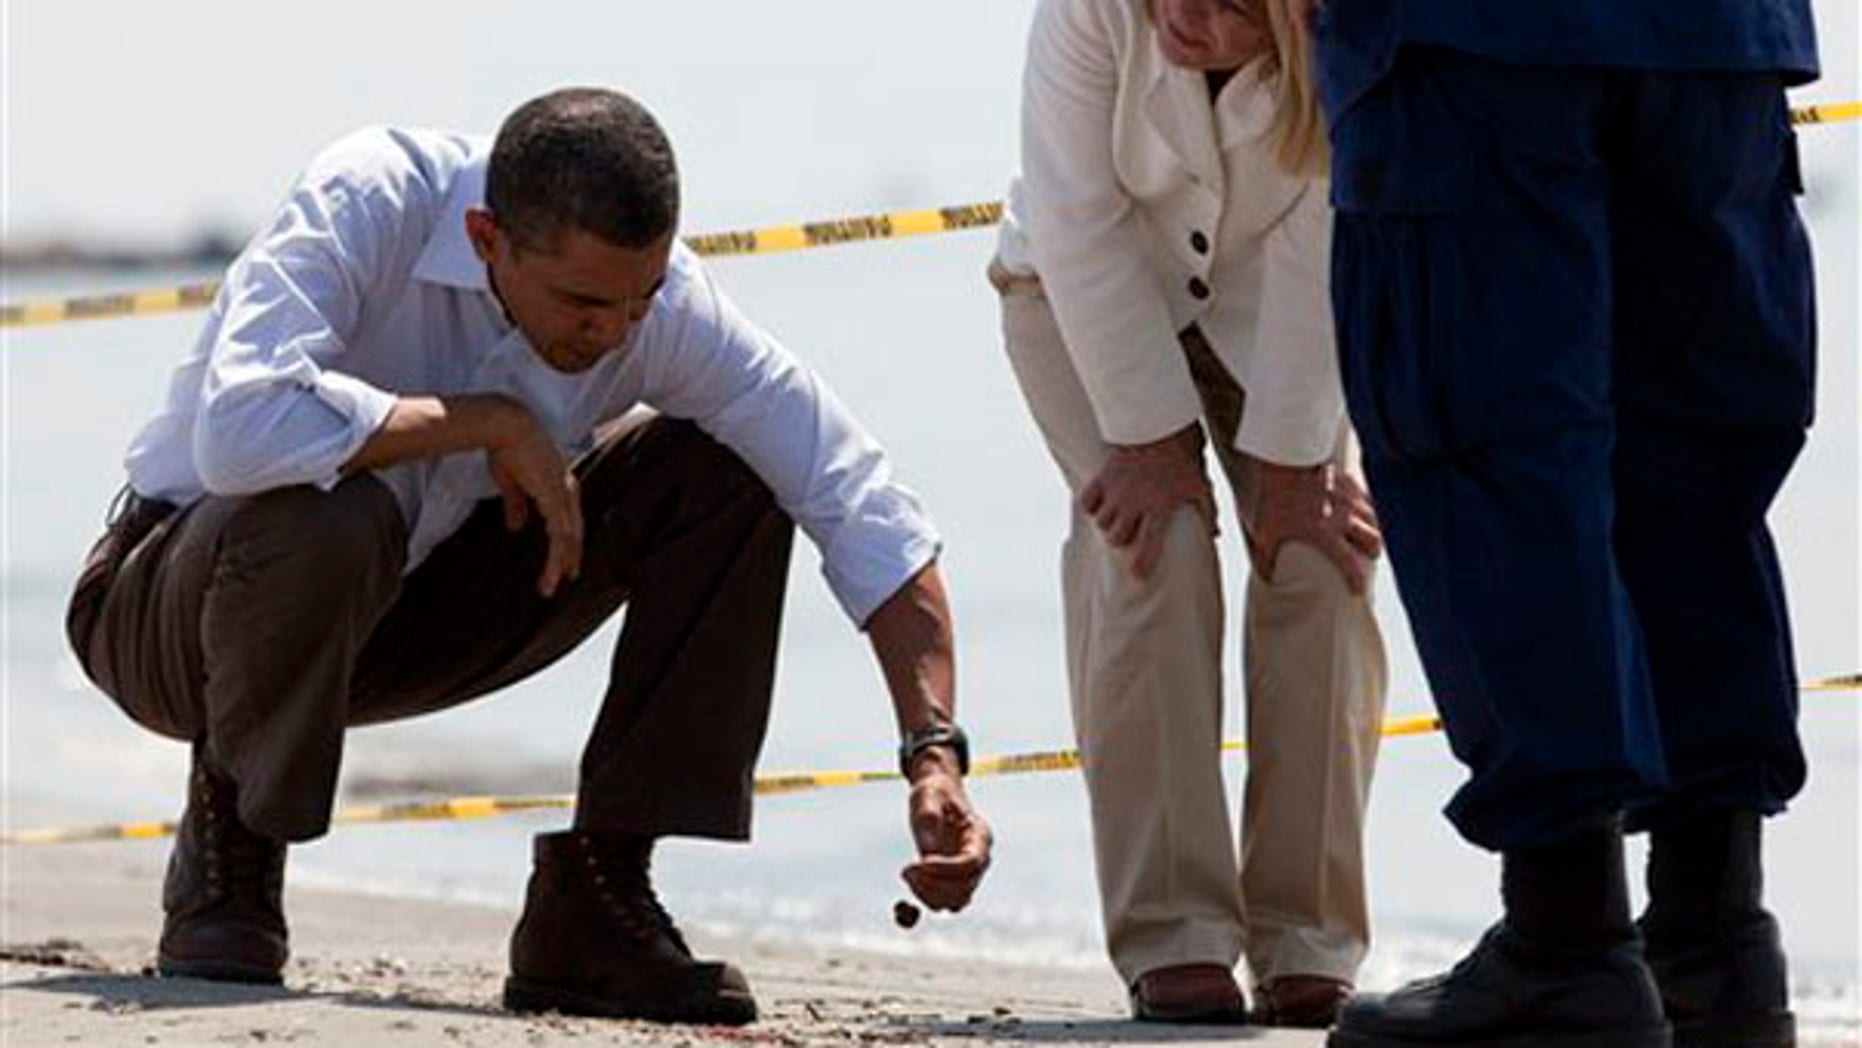 President Obama picks up a 'tar ball' during a tour of areas impacted by the Gulf Coast oil spill May 28 in Port Fourchon, La. (AP Photo)